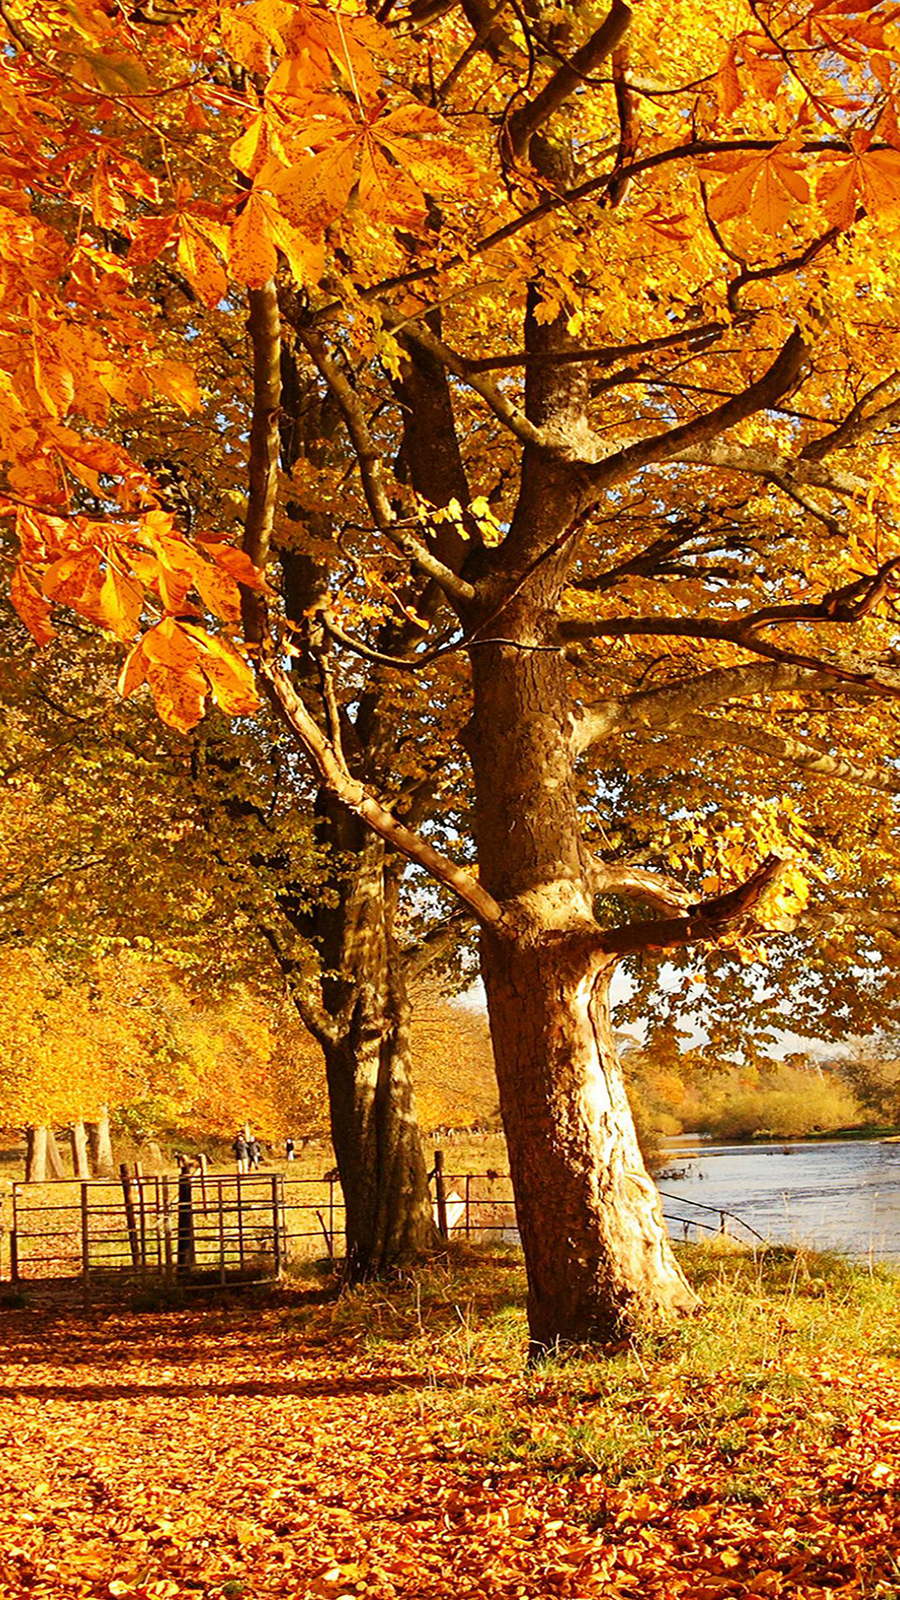 Scotland Autumn River Fall Wallpapers Free Download